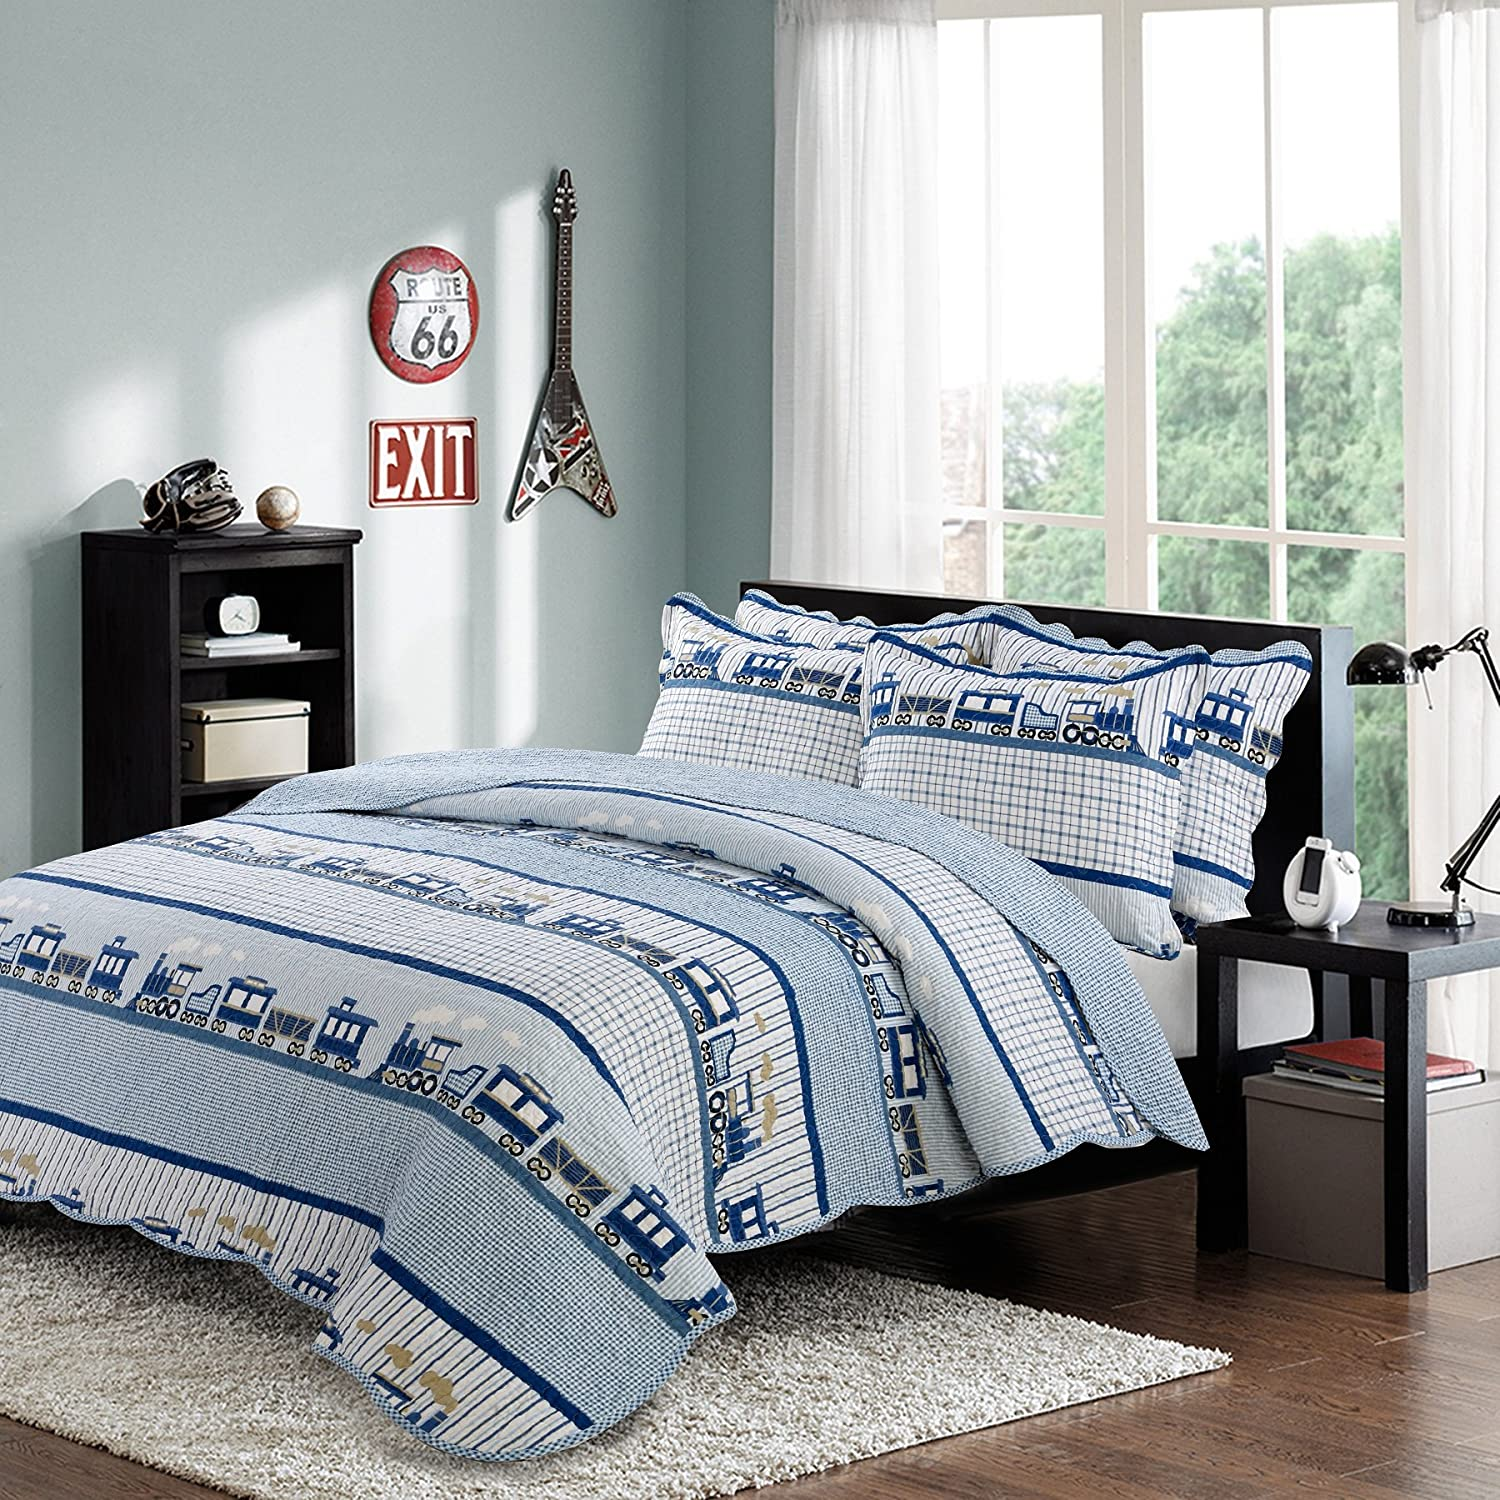 Brandream 3 Piece Kids Comforter Set Train Theme Boys Queen Quilt Bed Set